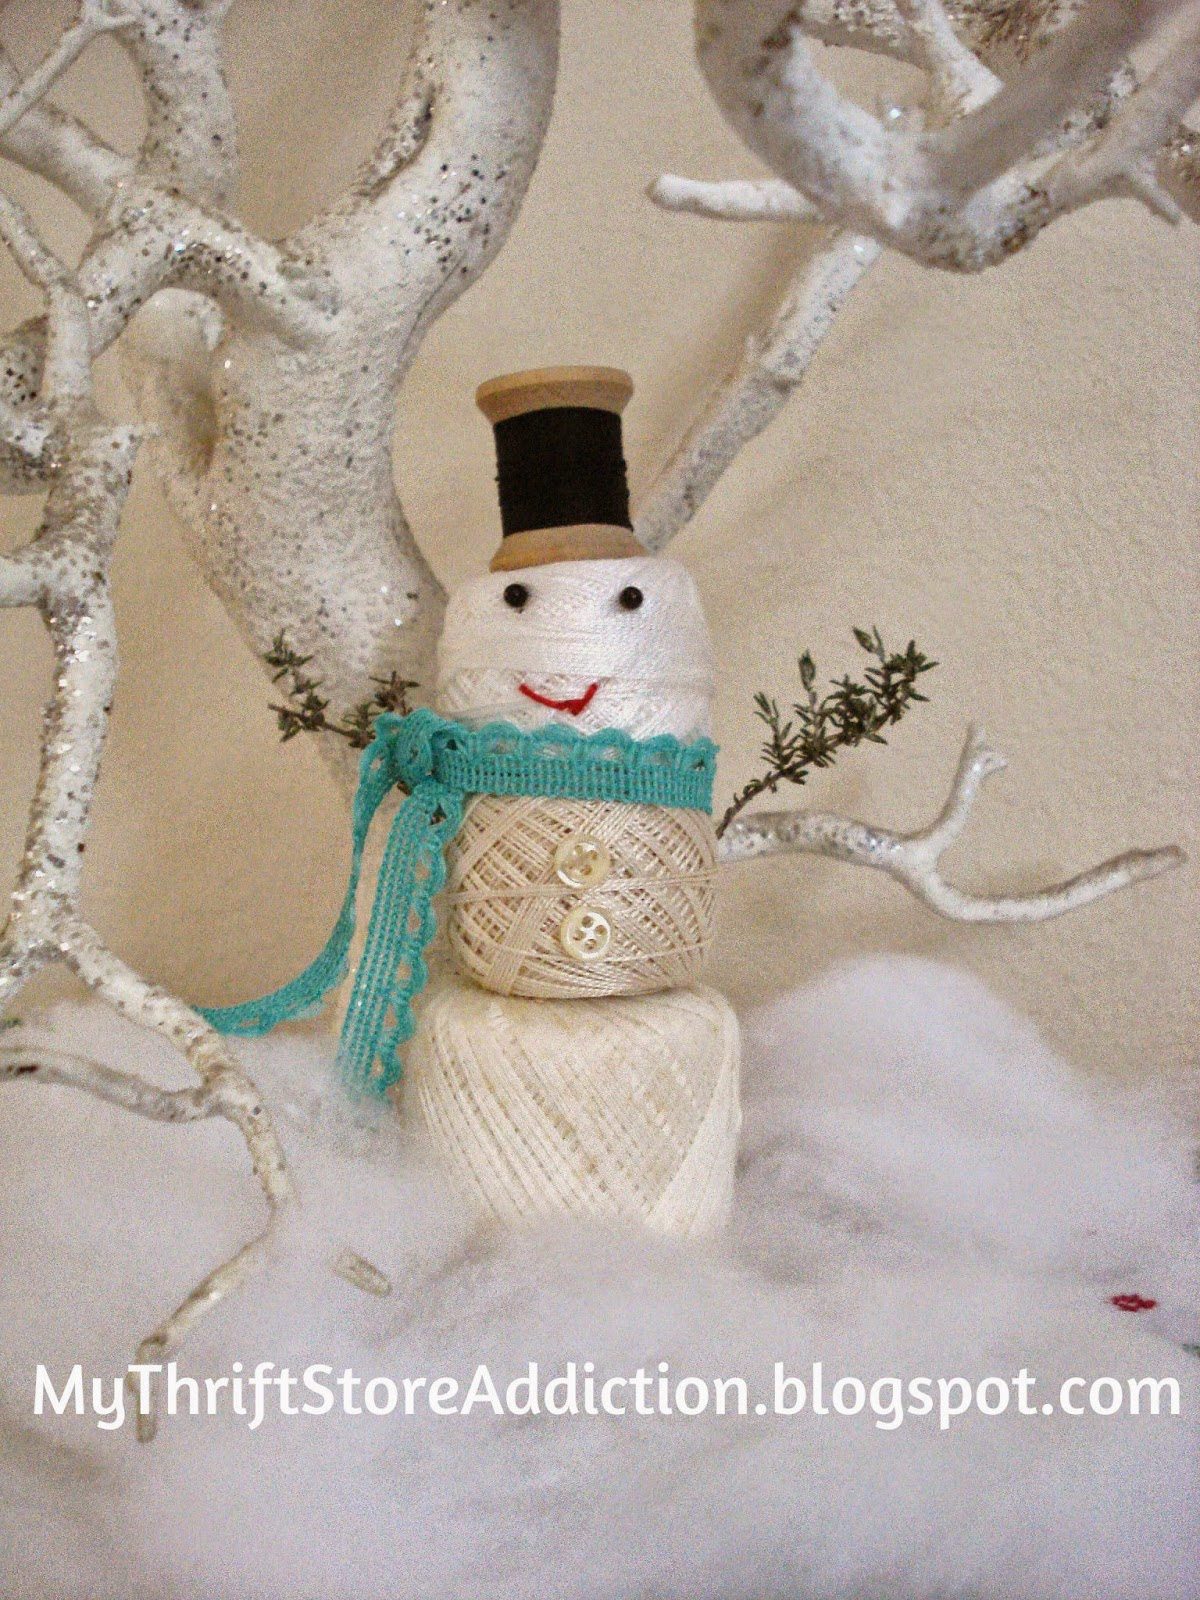 Vintage thread spool snowman